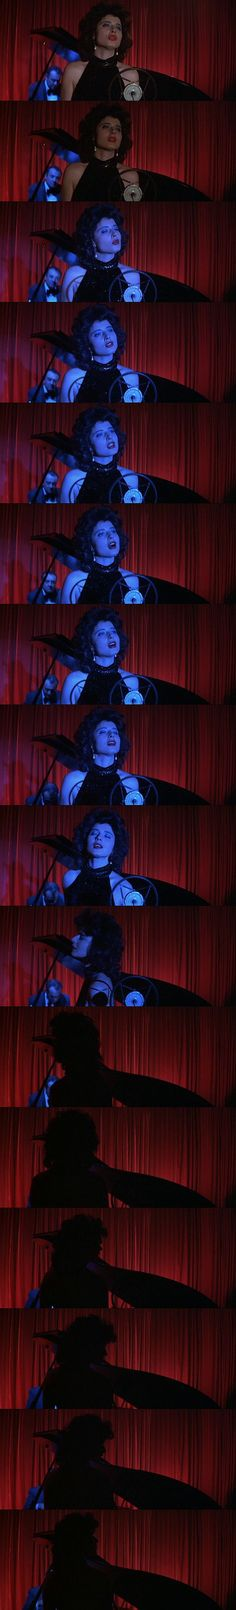 Blue Velvet - David Lynch film stills This movie woos me in such a way. I love it.